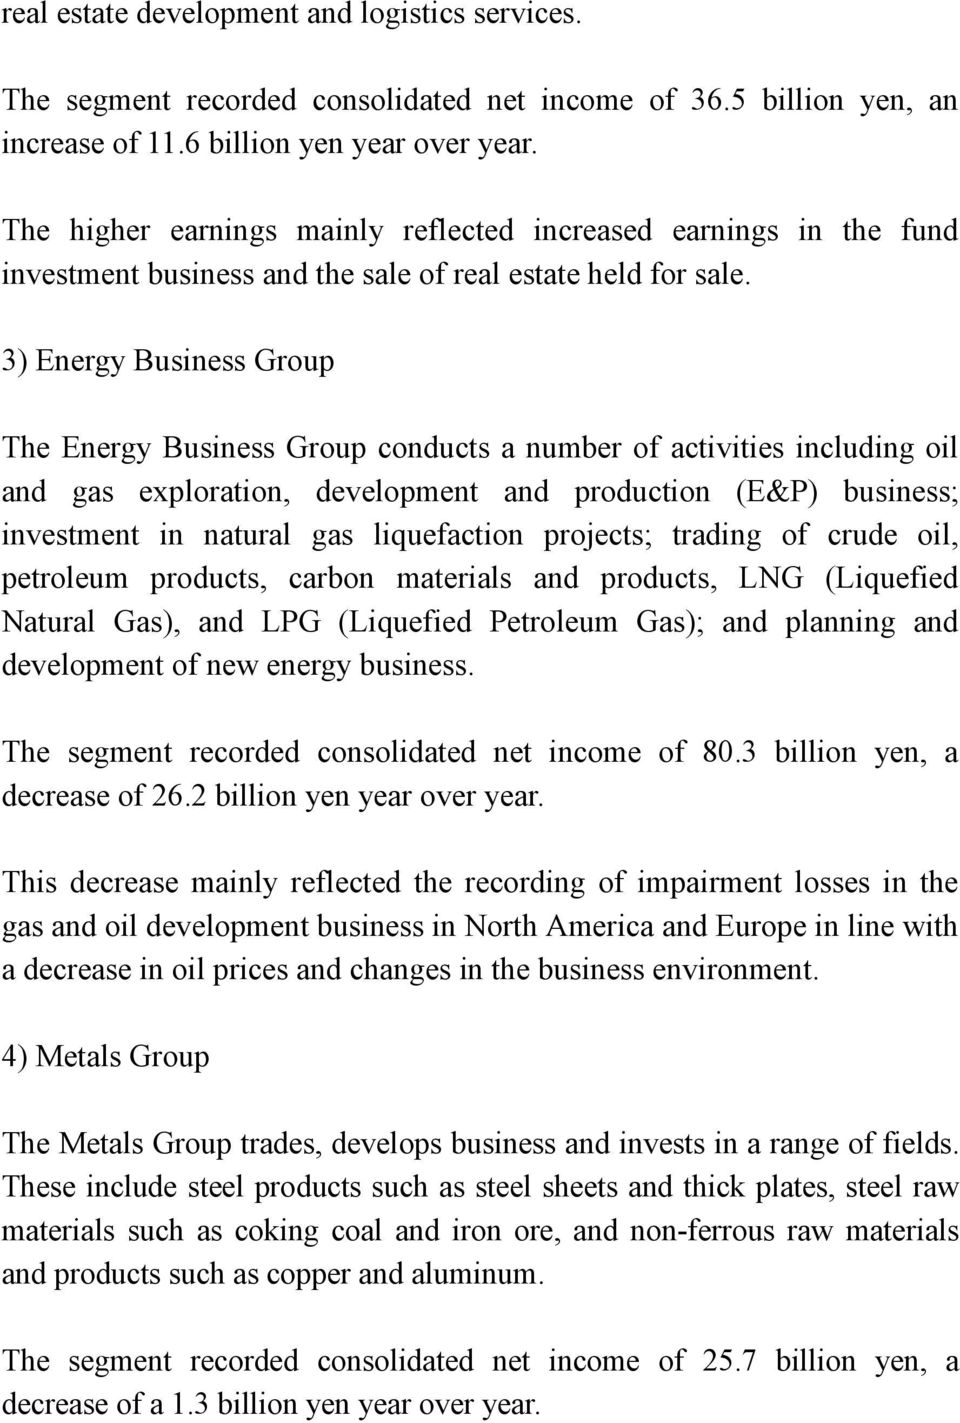 3) Energy Business Group The Energy Business Group conducts a number of activities including oil and gas exploration, development and production (E&P) business; investment in natural gas liquefaction